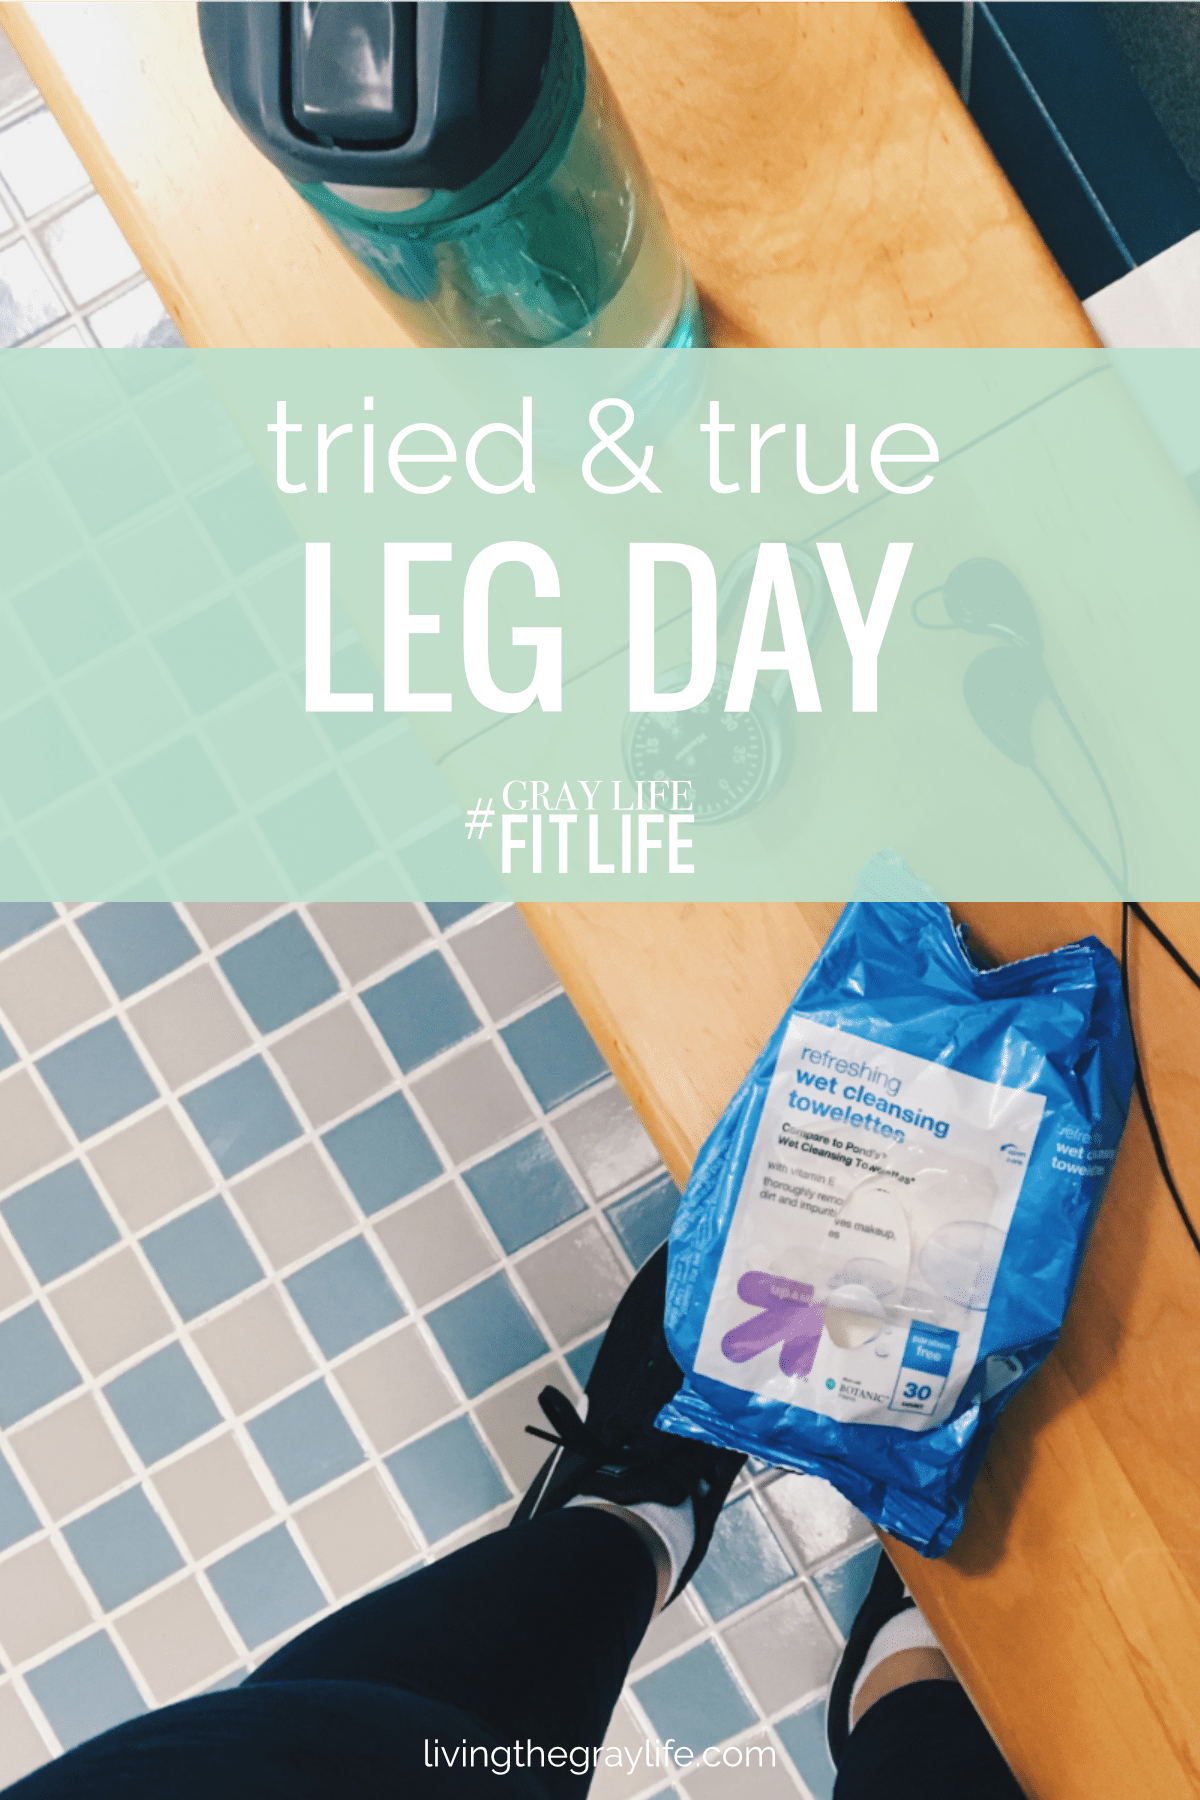 Looking for a leg workout to really get you sore and get those gains? Look no further! Check out my tried and true leg workout!